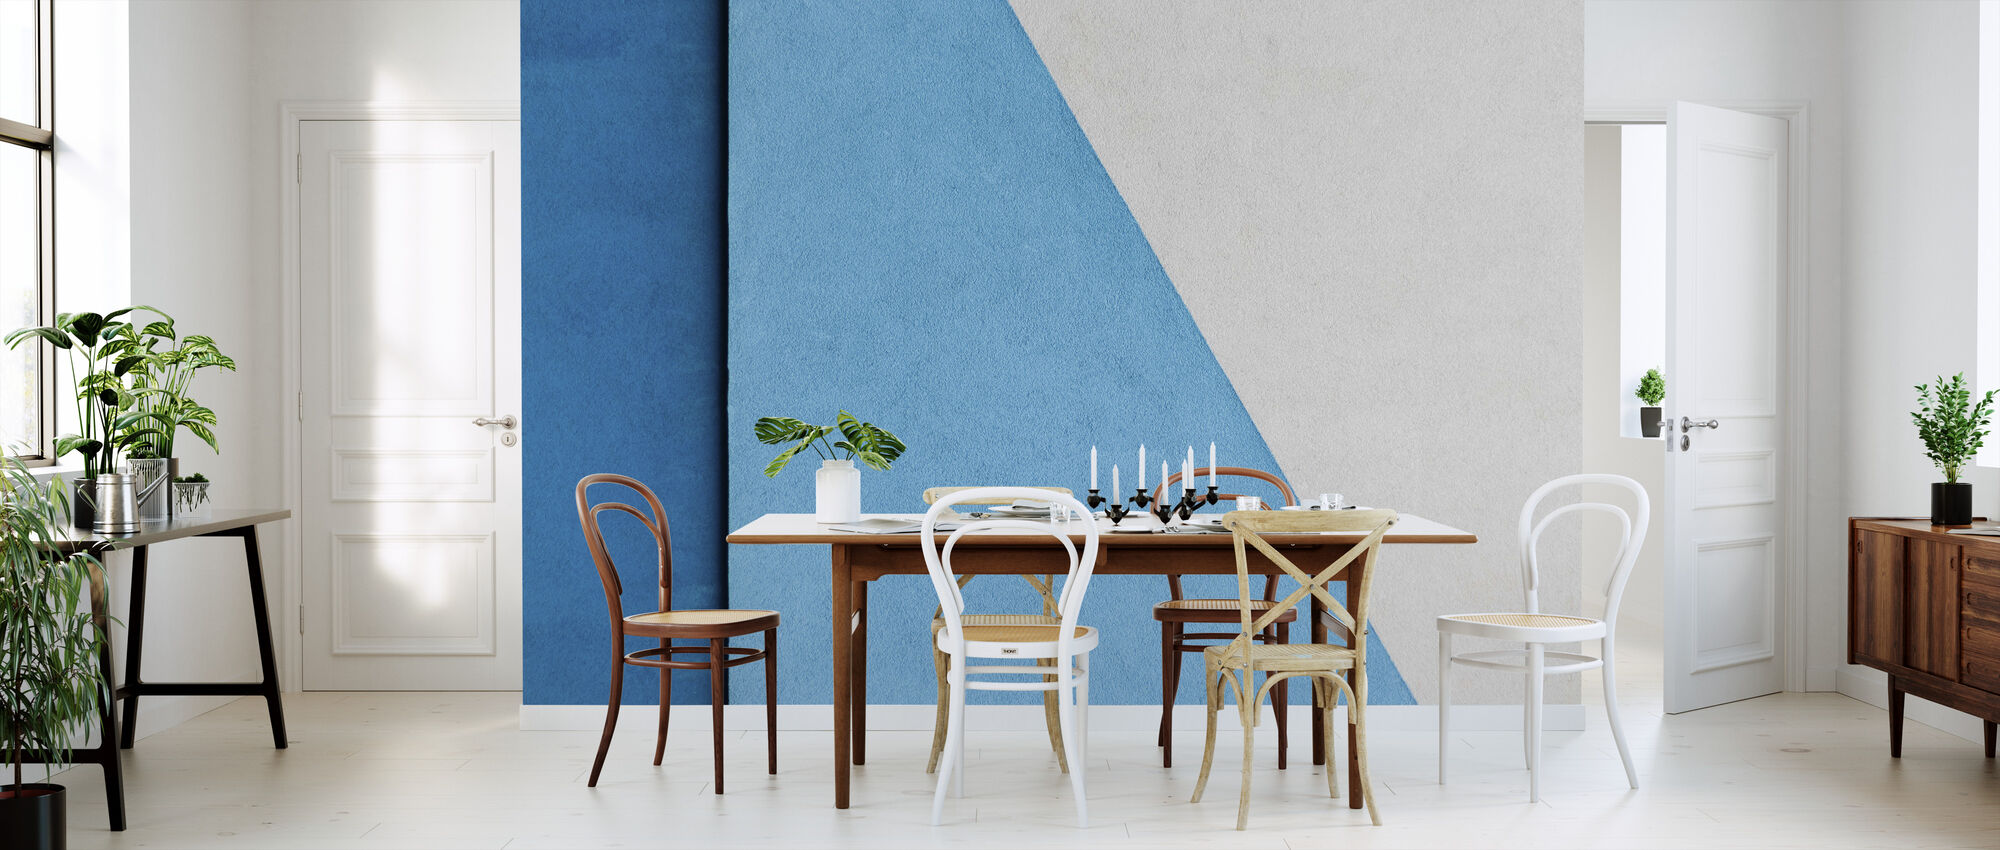 Blue and White Wall - Wallpaper - Kitchen